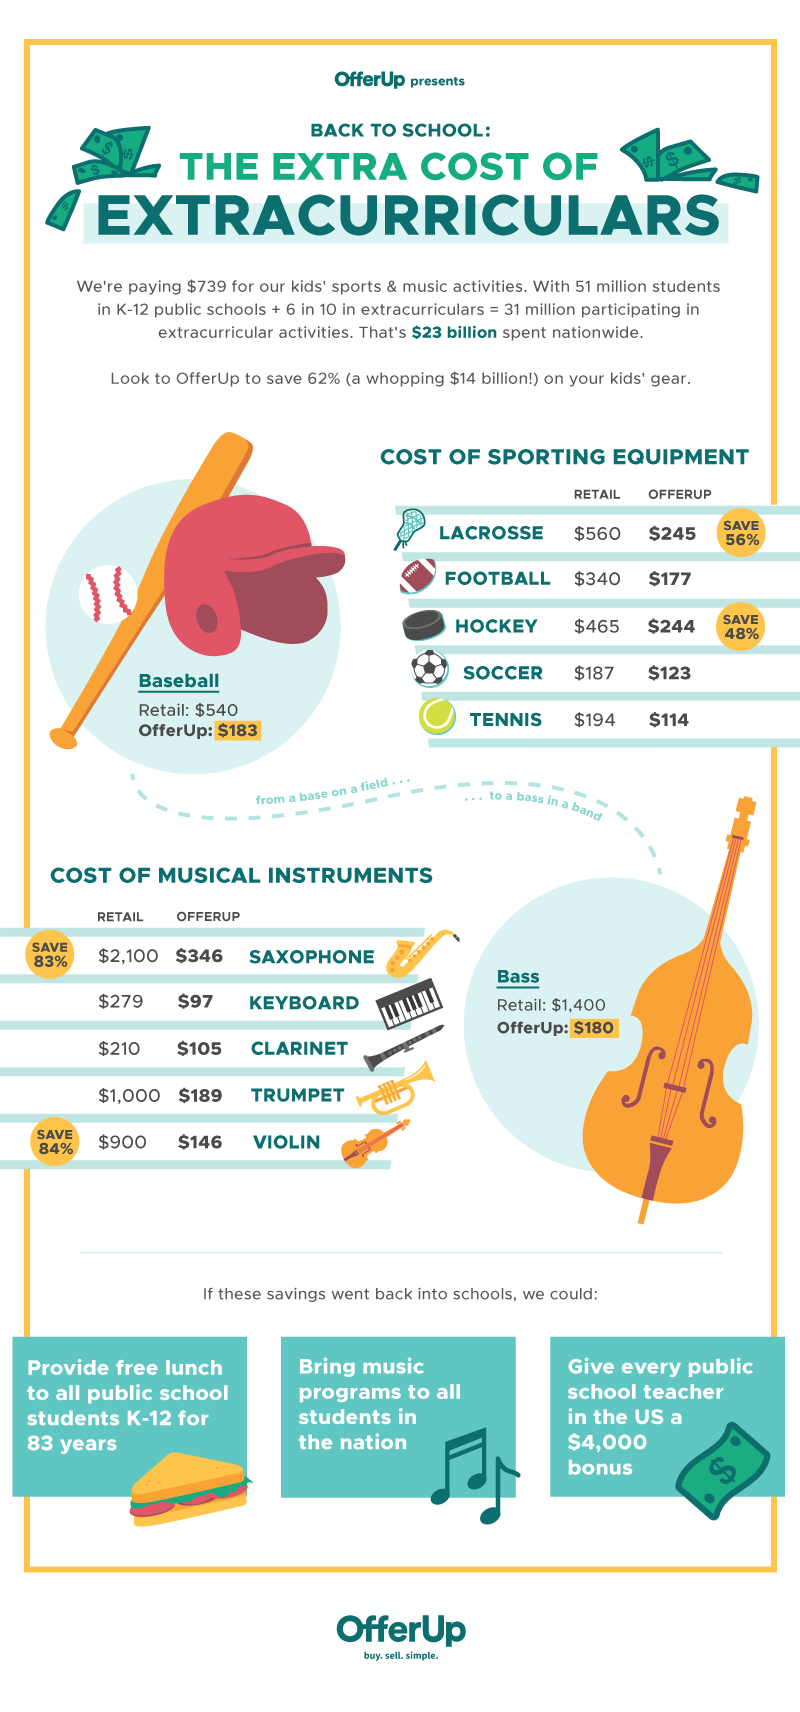 extracurriculars-infographic_final-web_800x1712px.png